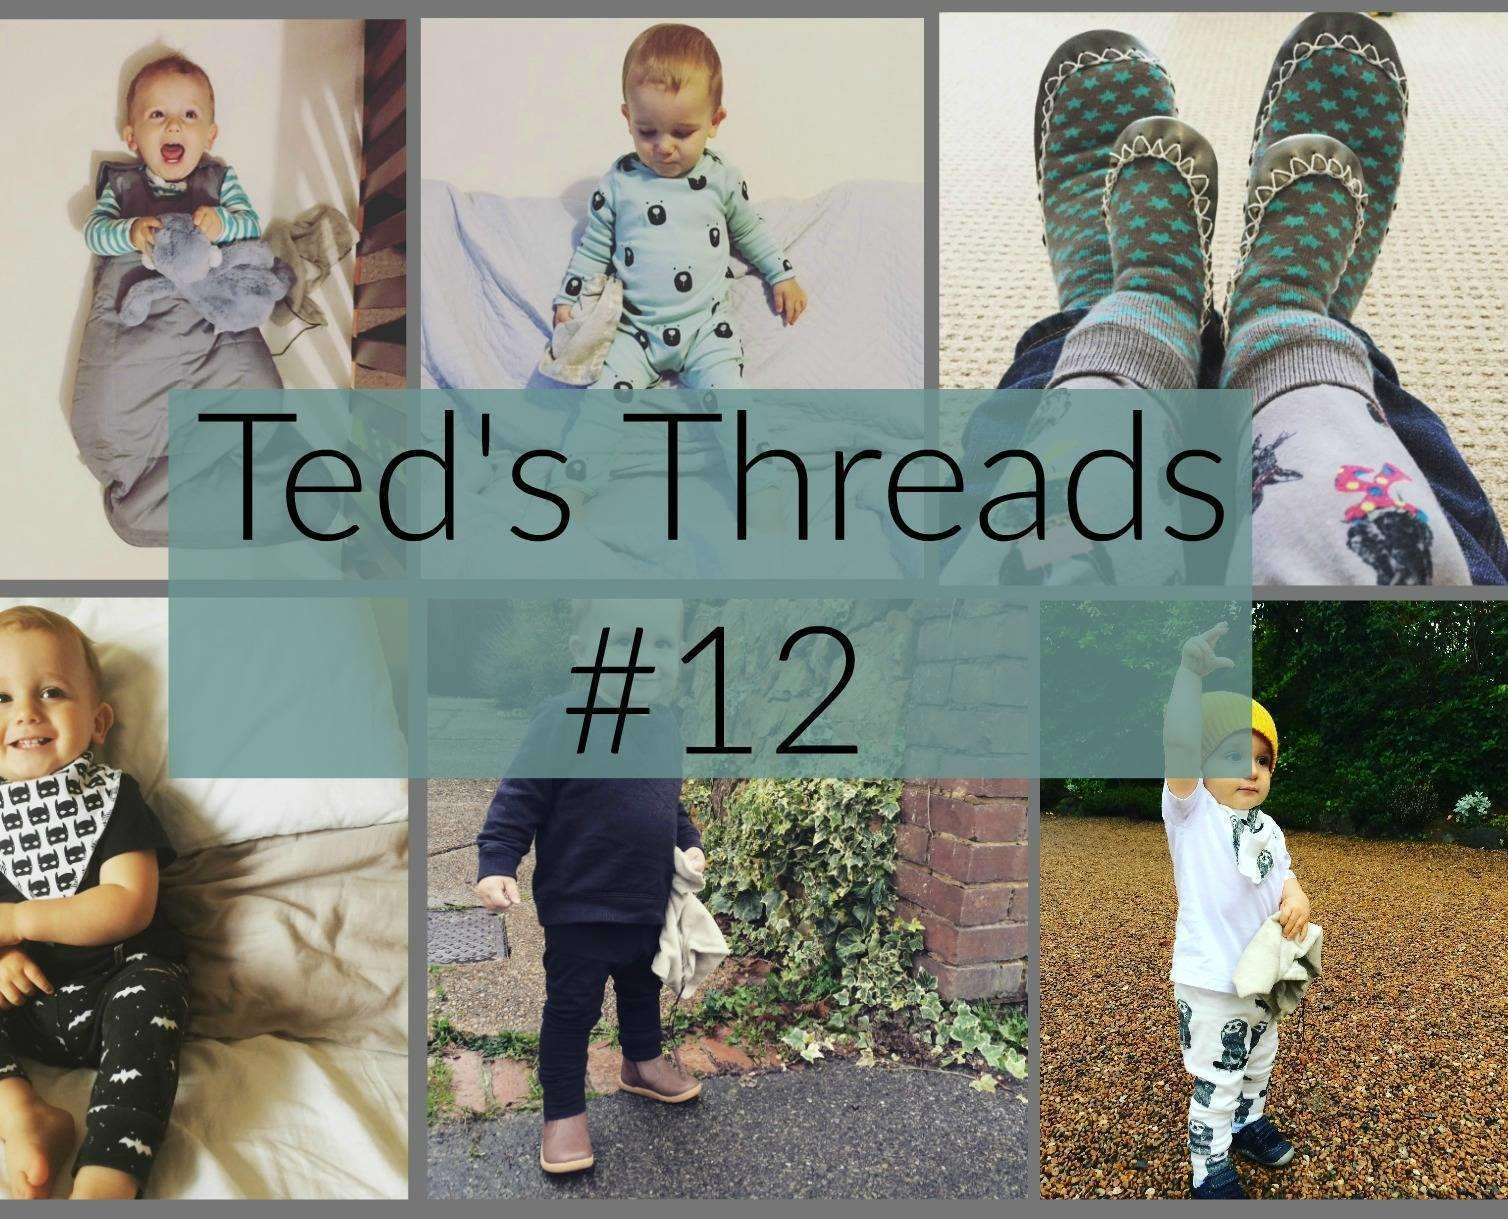 Teds Threads Issue No. 12 PLUS Discount Codes, Teds Threads featured1%, uncategorised%